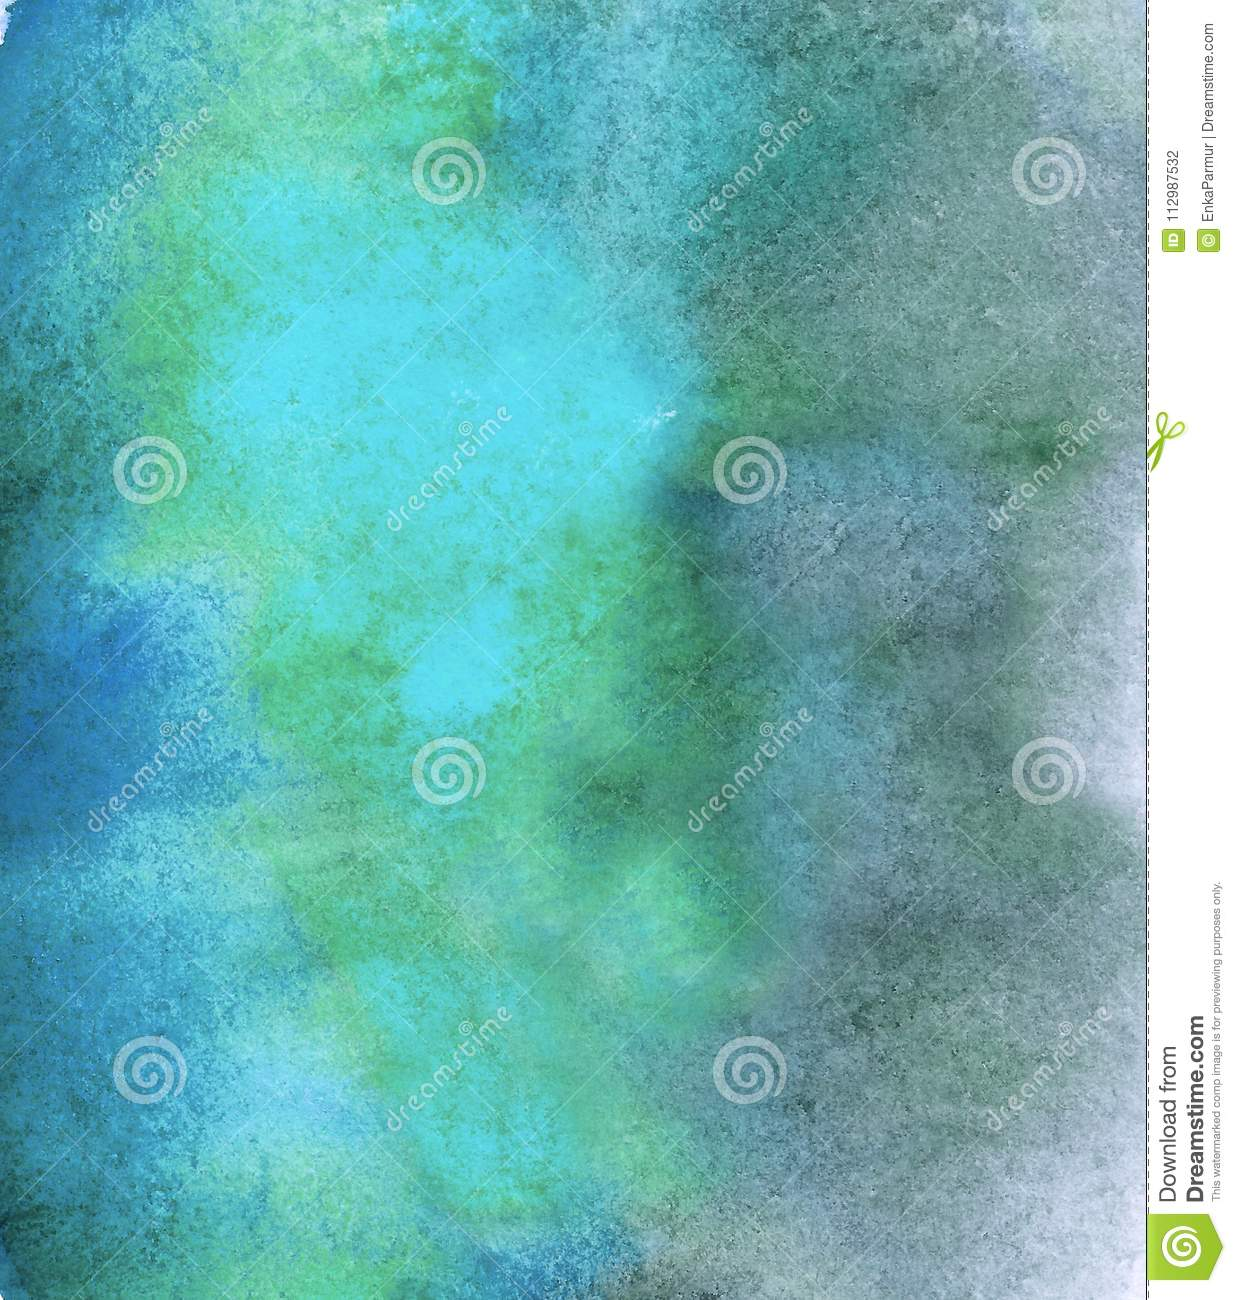 Abstract acrylic painted empty background. Blue watercolor texture. Grunge template for your design.